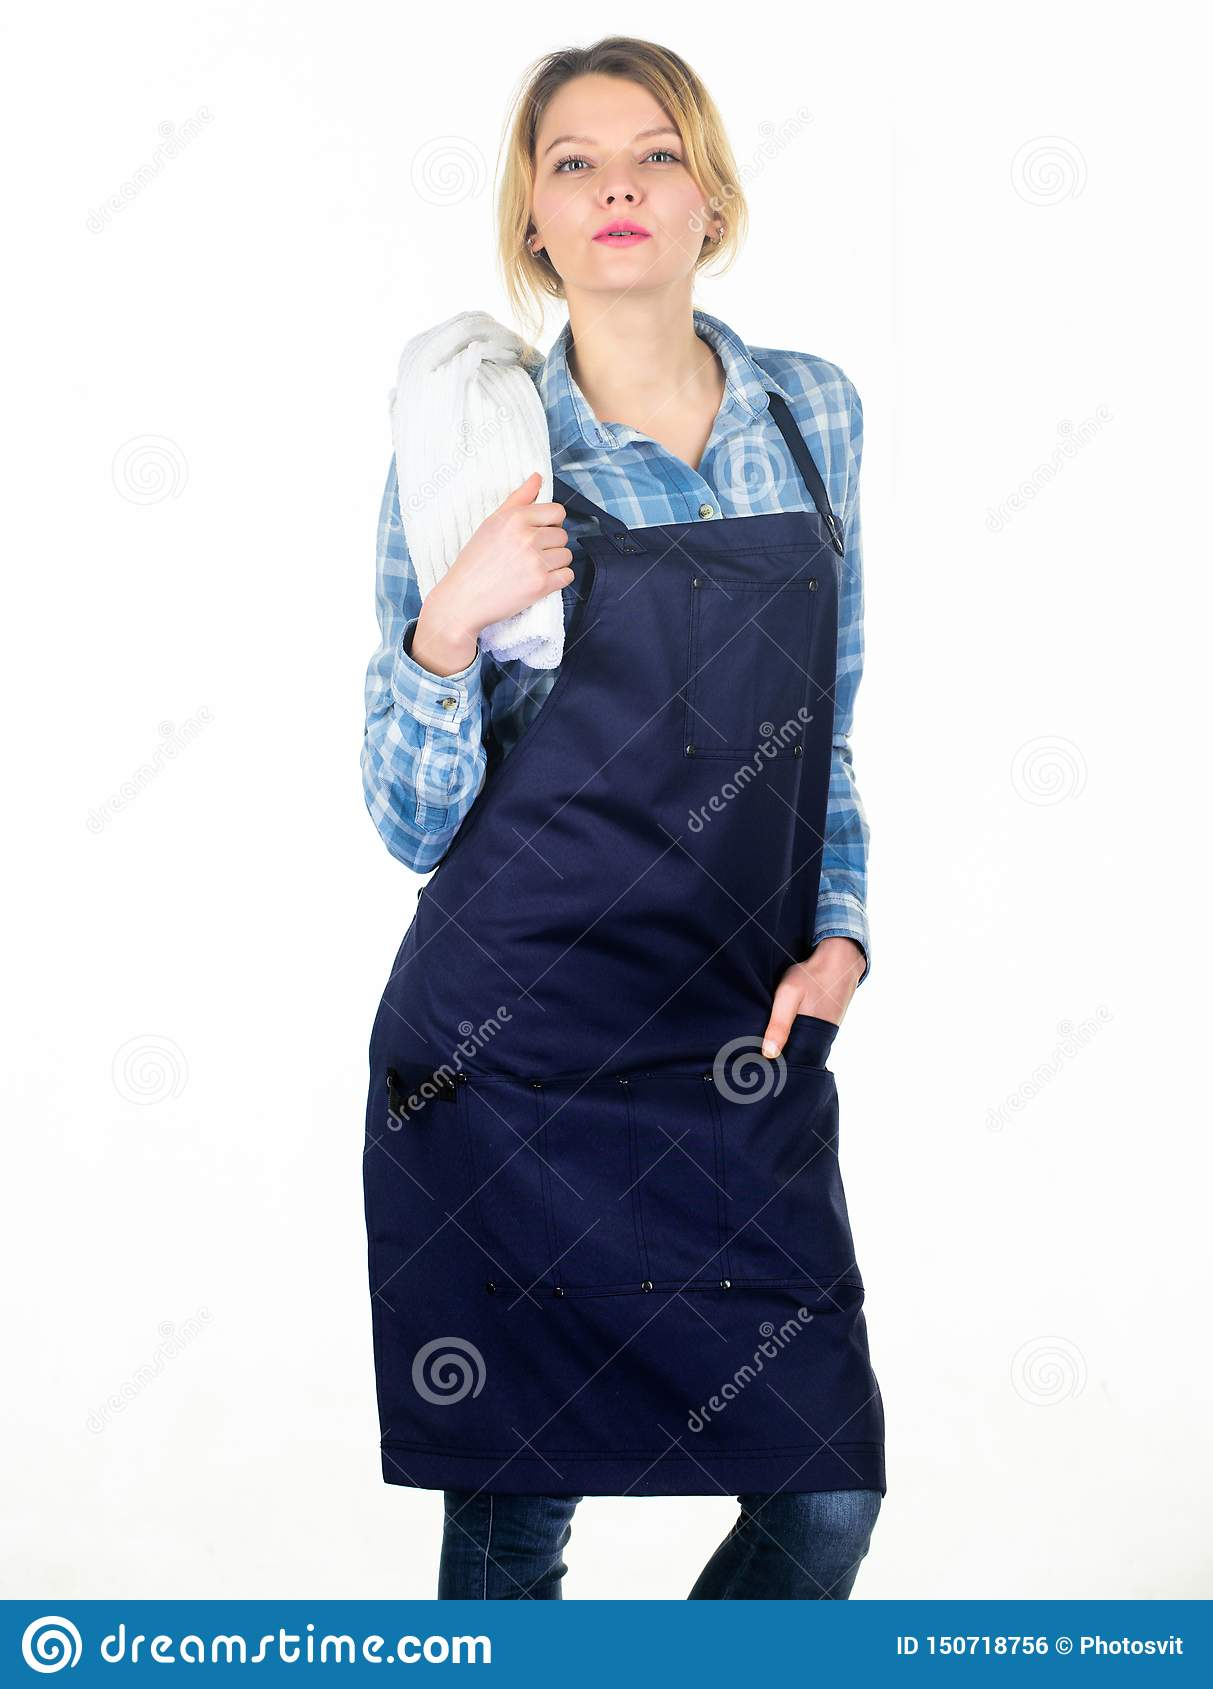 Grilling food. Cooking meat at low temperature for long time outdoors. Cooking meat in park. Barbecue master. Woman